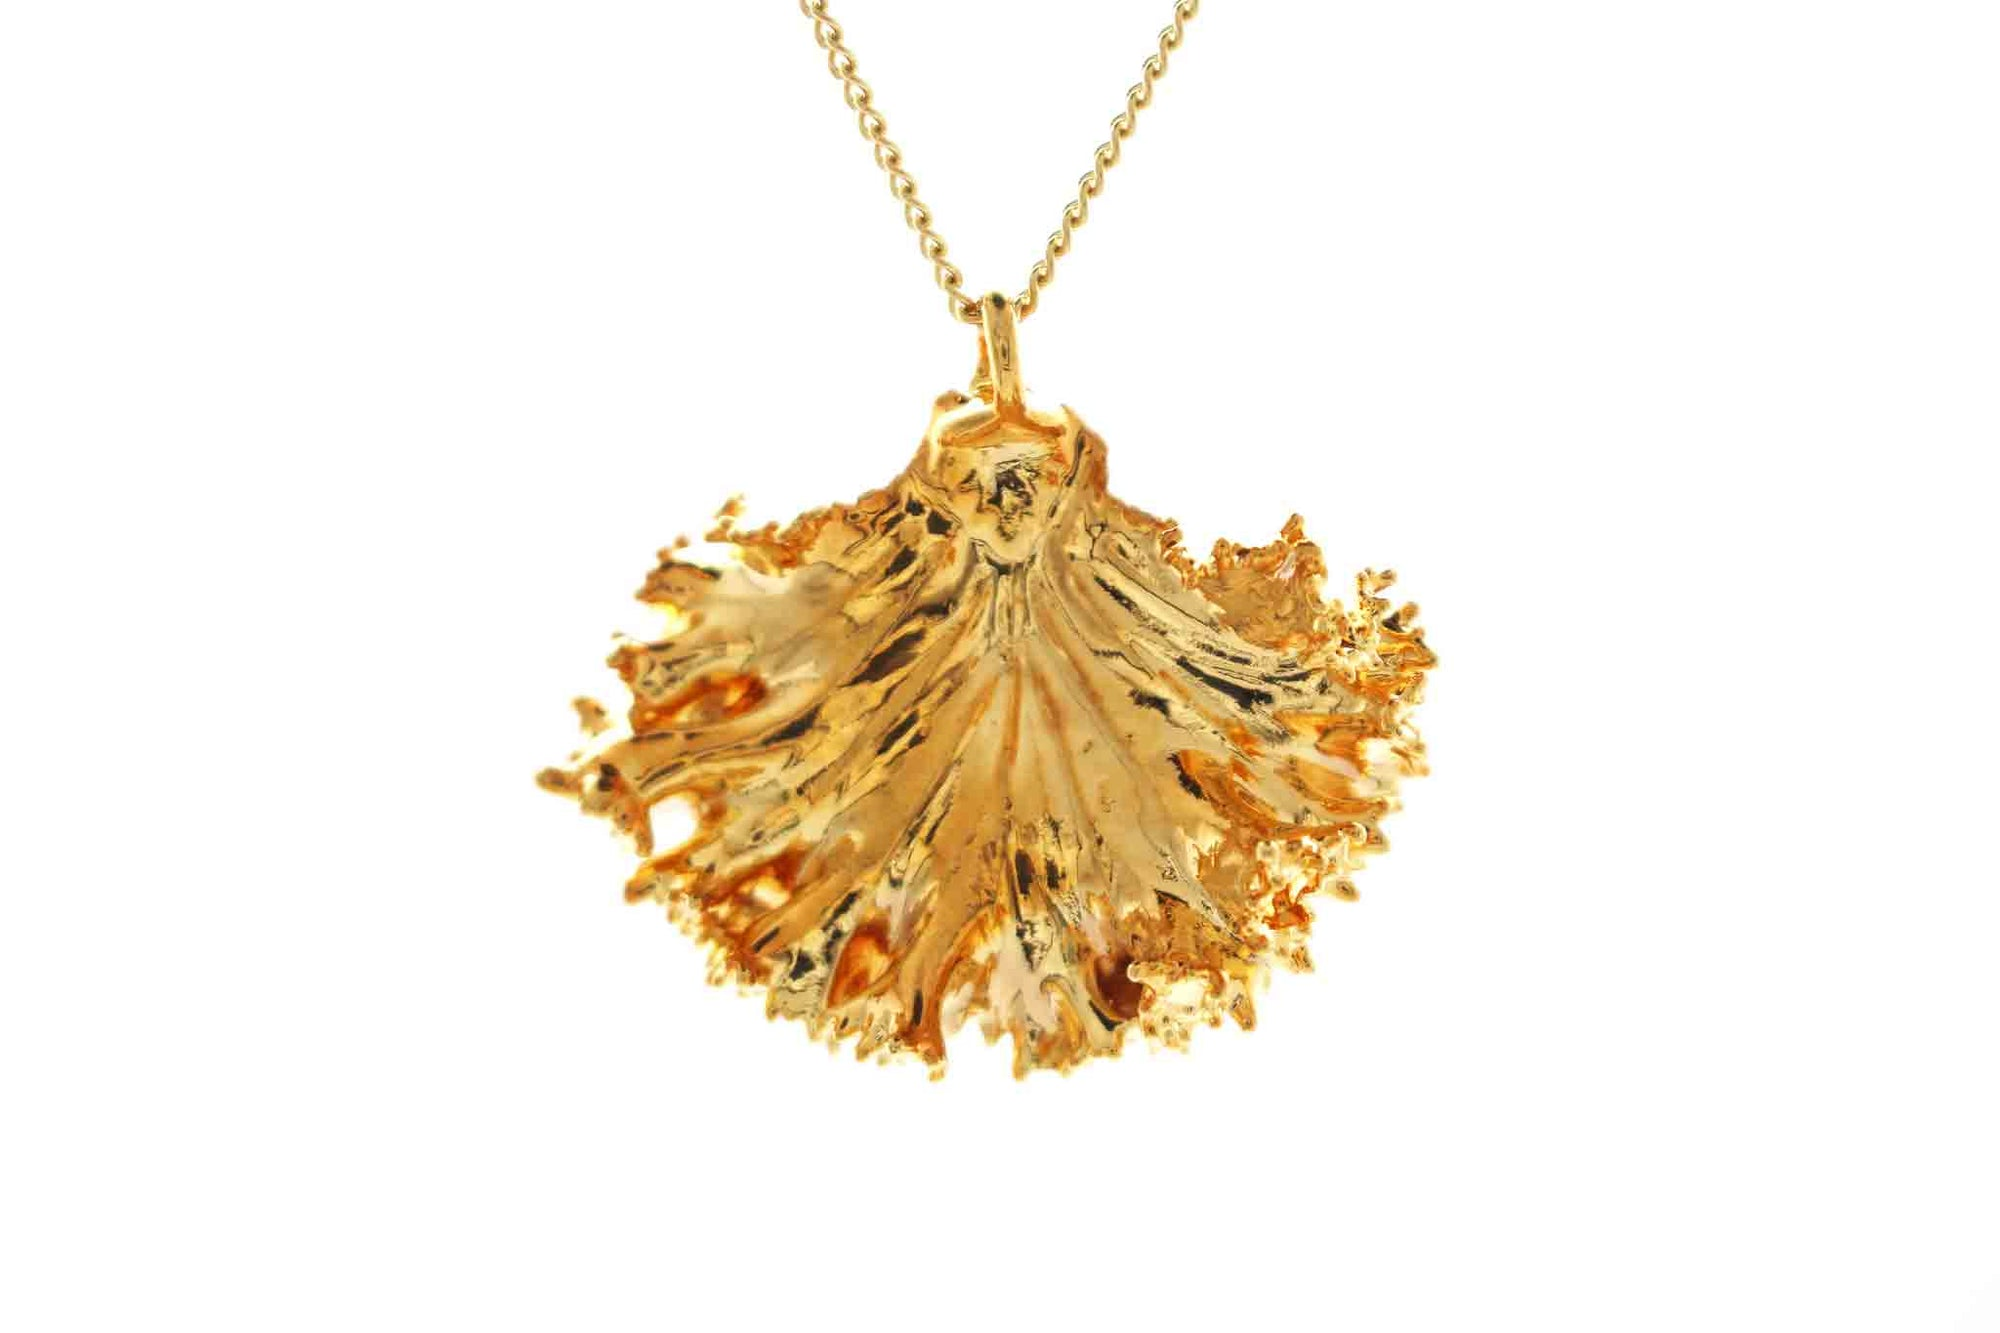 Real Kale Leaf Necklace In Gold